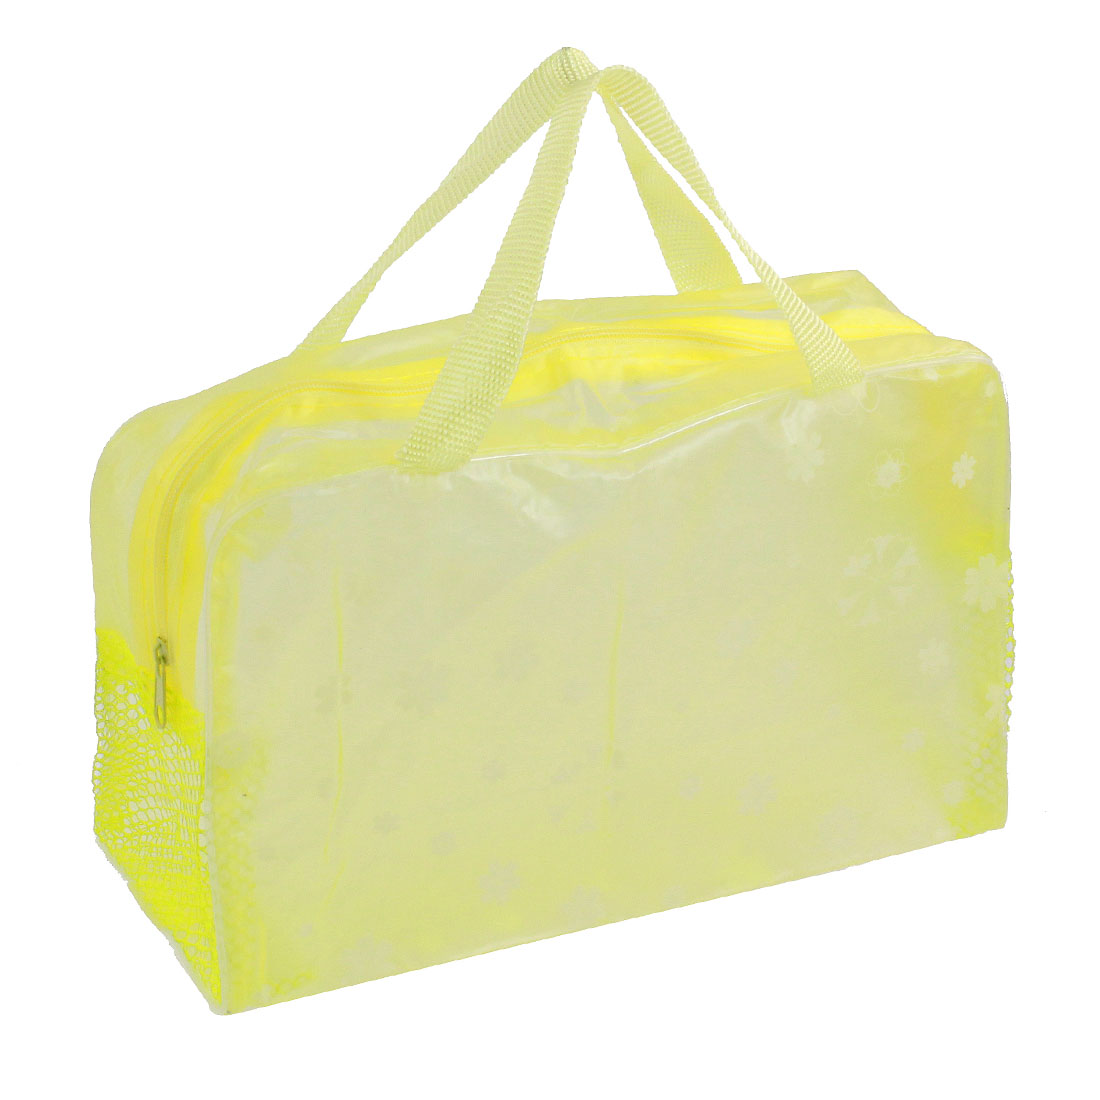 Portable Floral Print Clear Zipper Mesh Bathroom Shower Travel Wash Bag Light Yellow